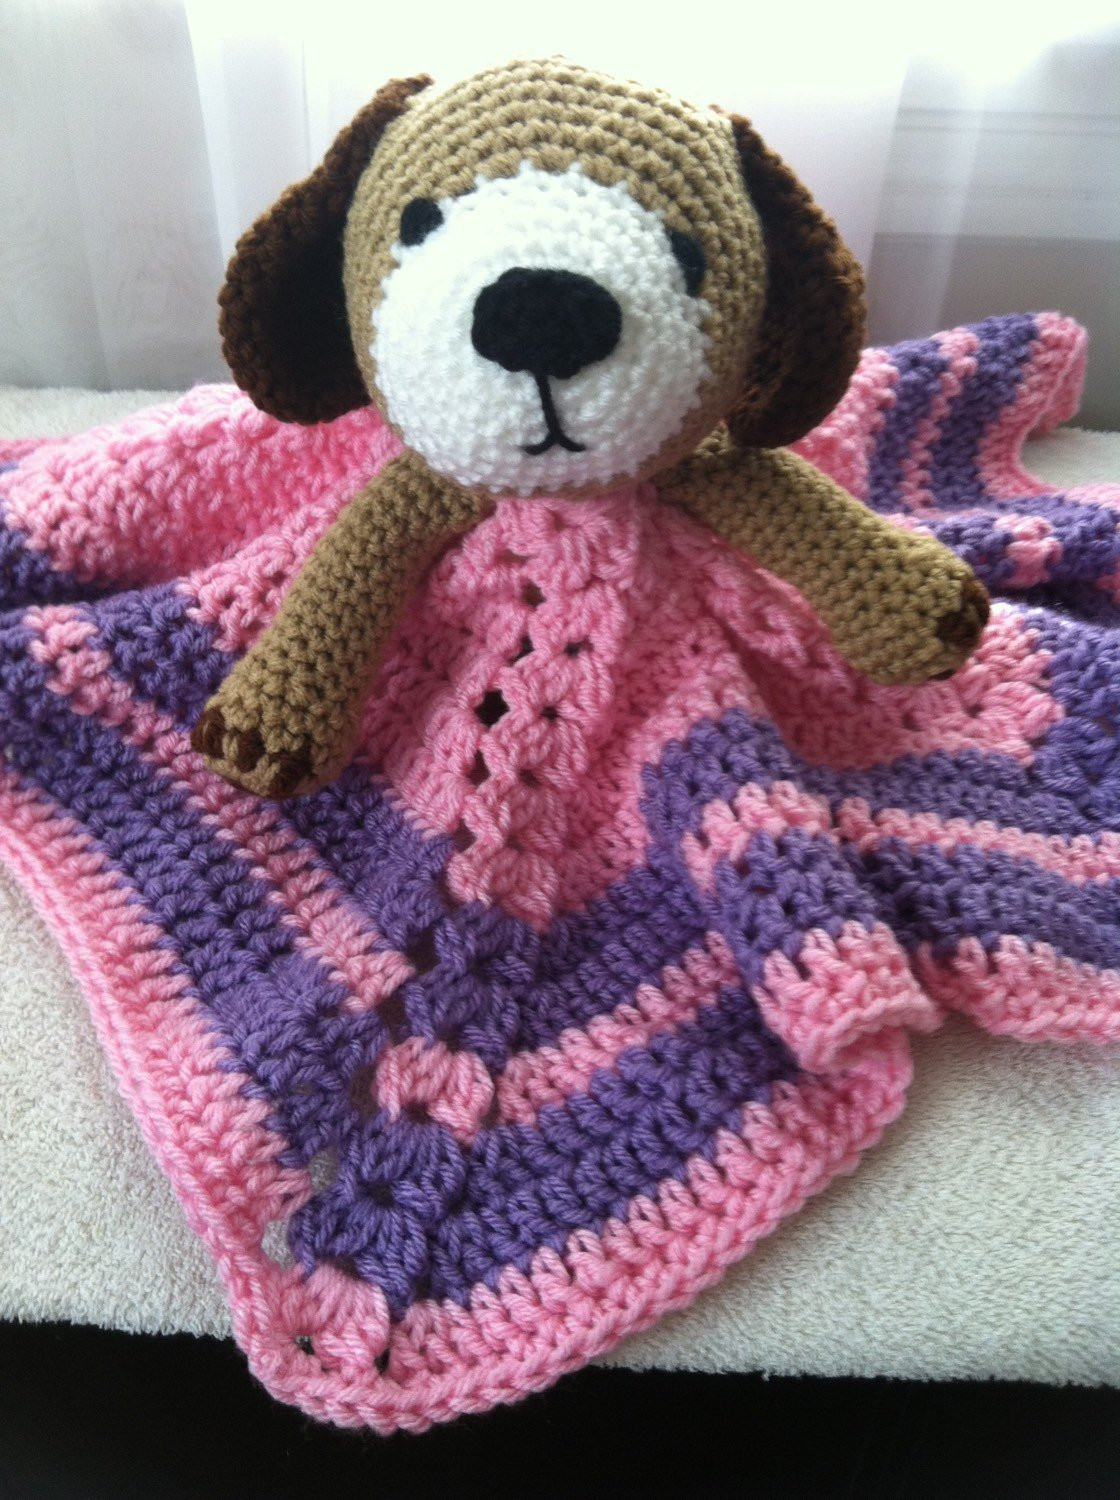 Unique Crochet Dog Puppy Snuggle Lovey Doggy Security Travel Wubby Crochet Lovey Blanket Of Attractive 46 Pics Crochet Lovey Blanket